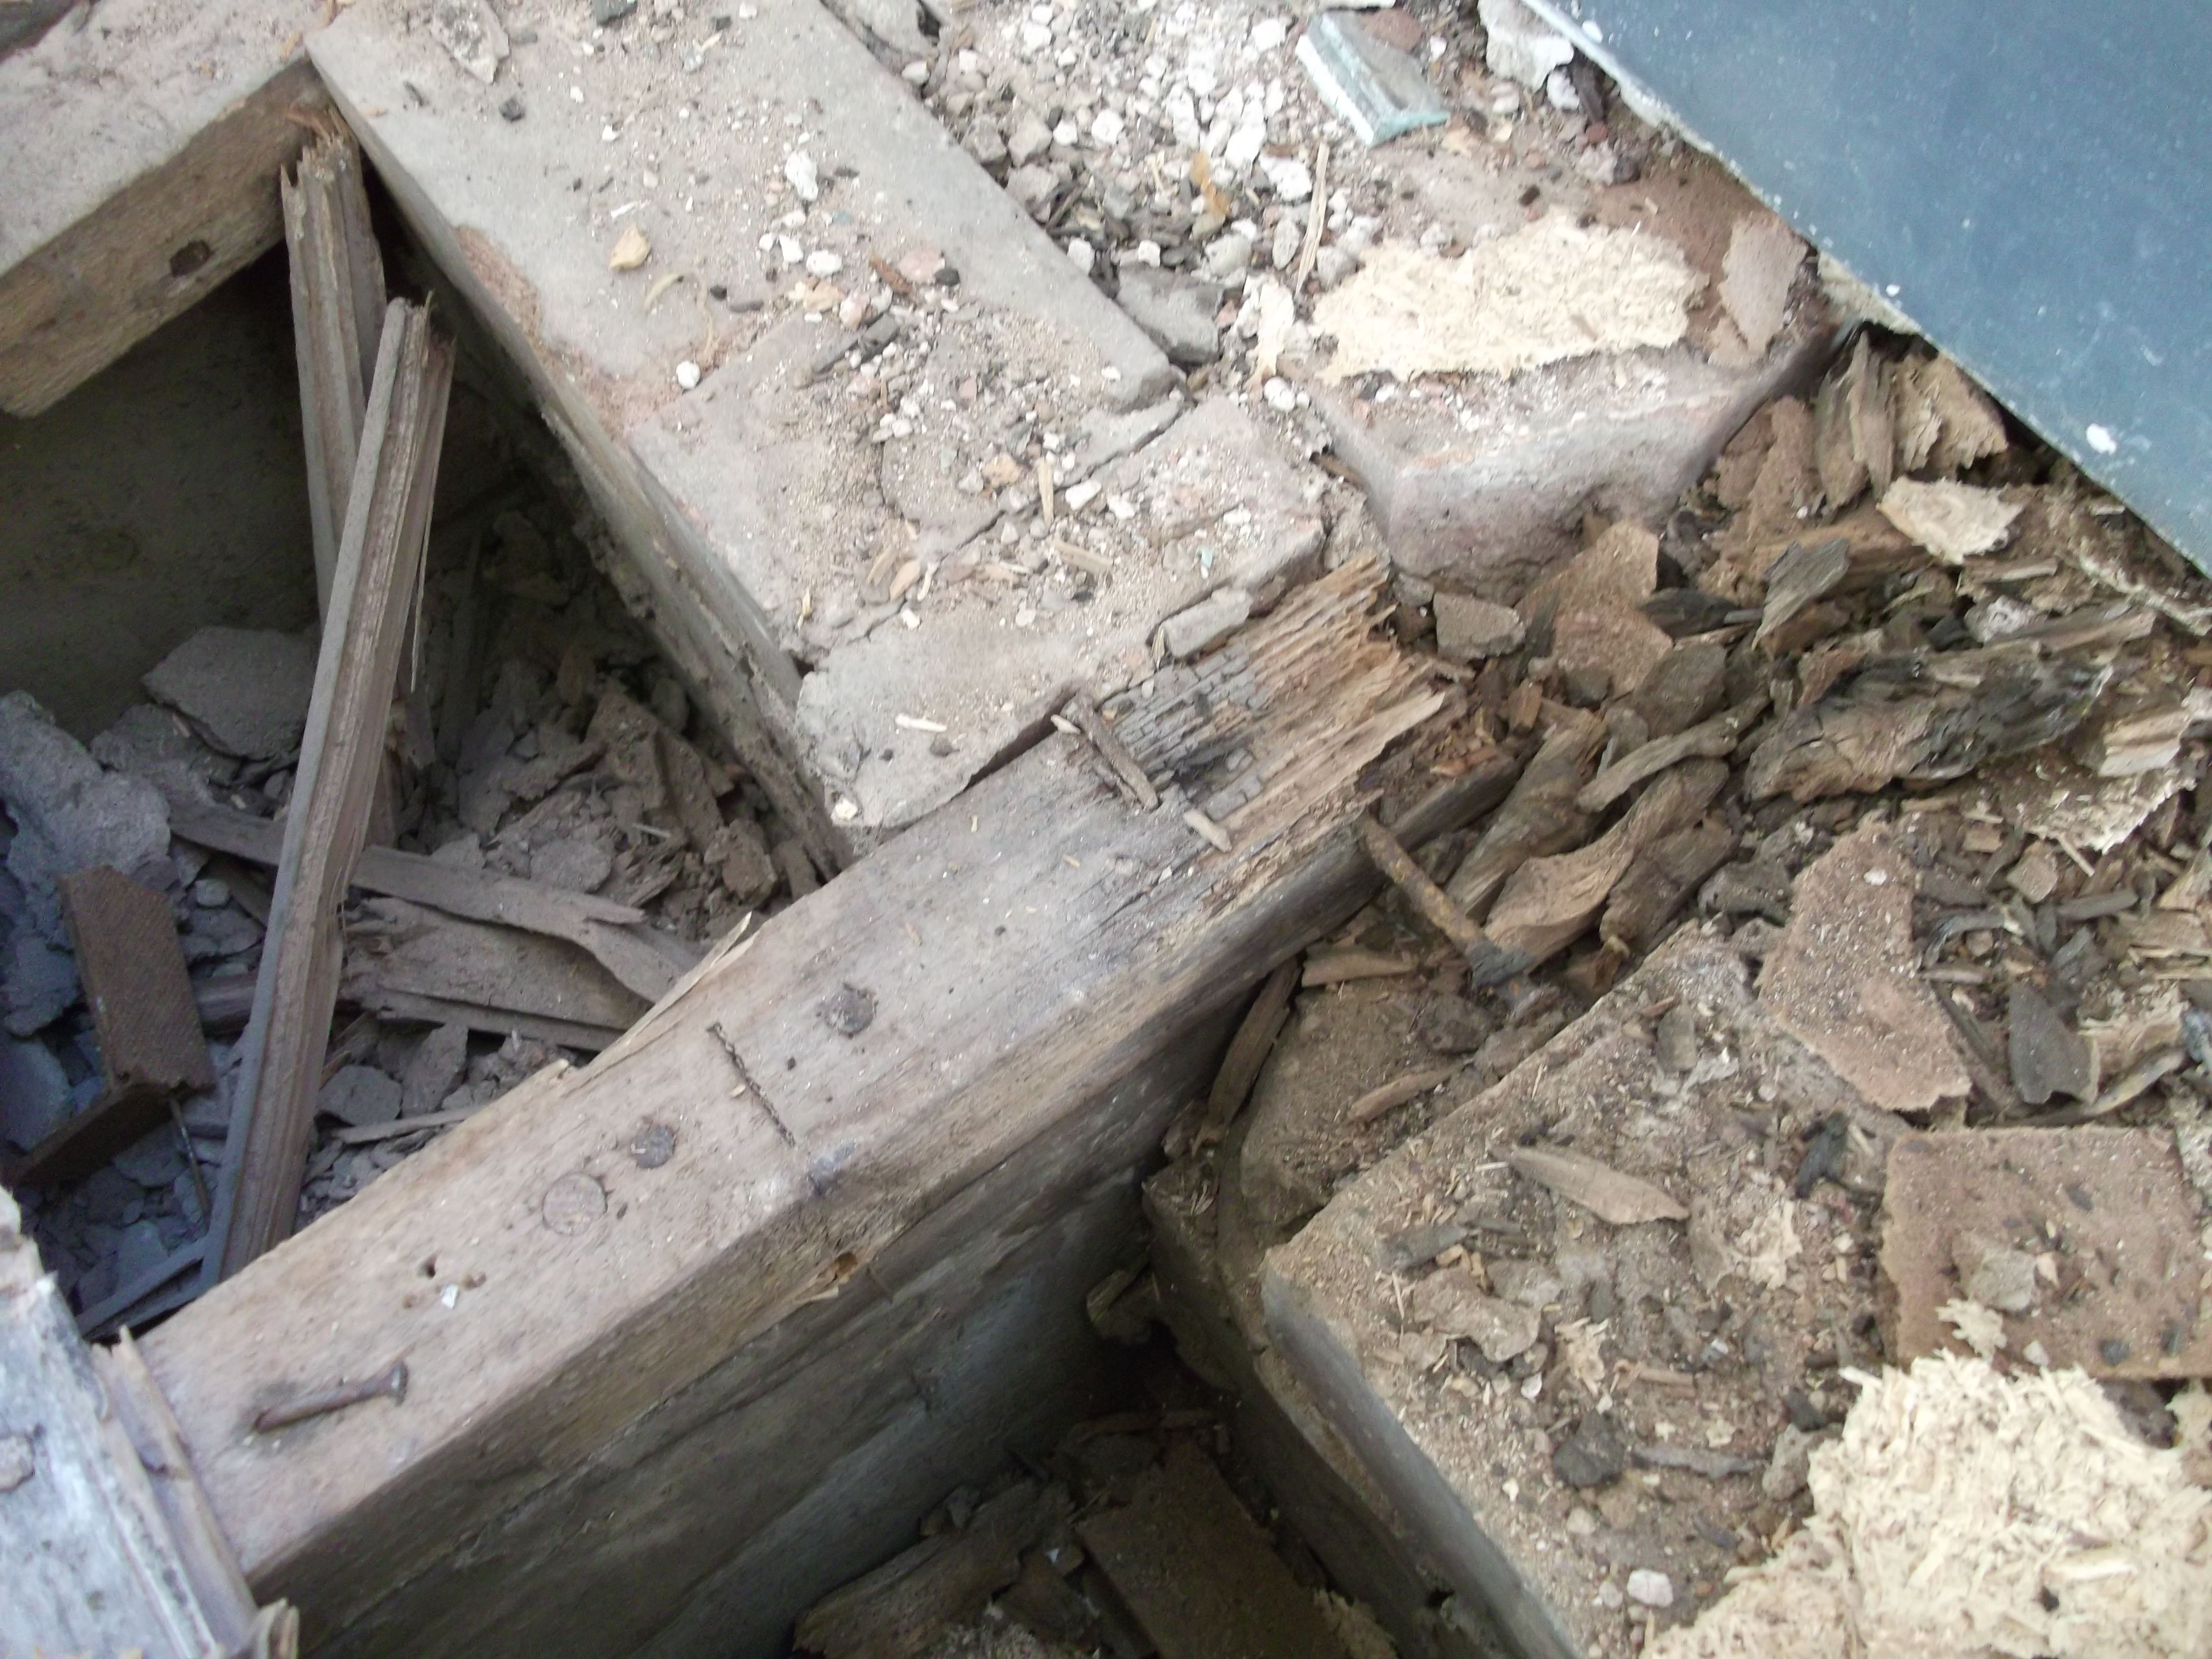 Dry Rot Image Showing Damage To Floor Joists And Floor Flooring